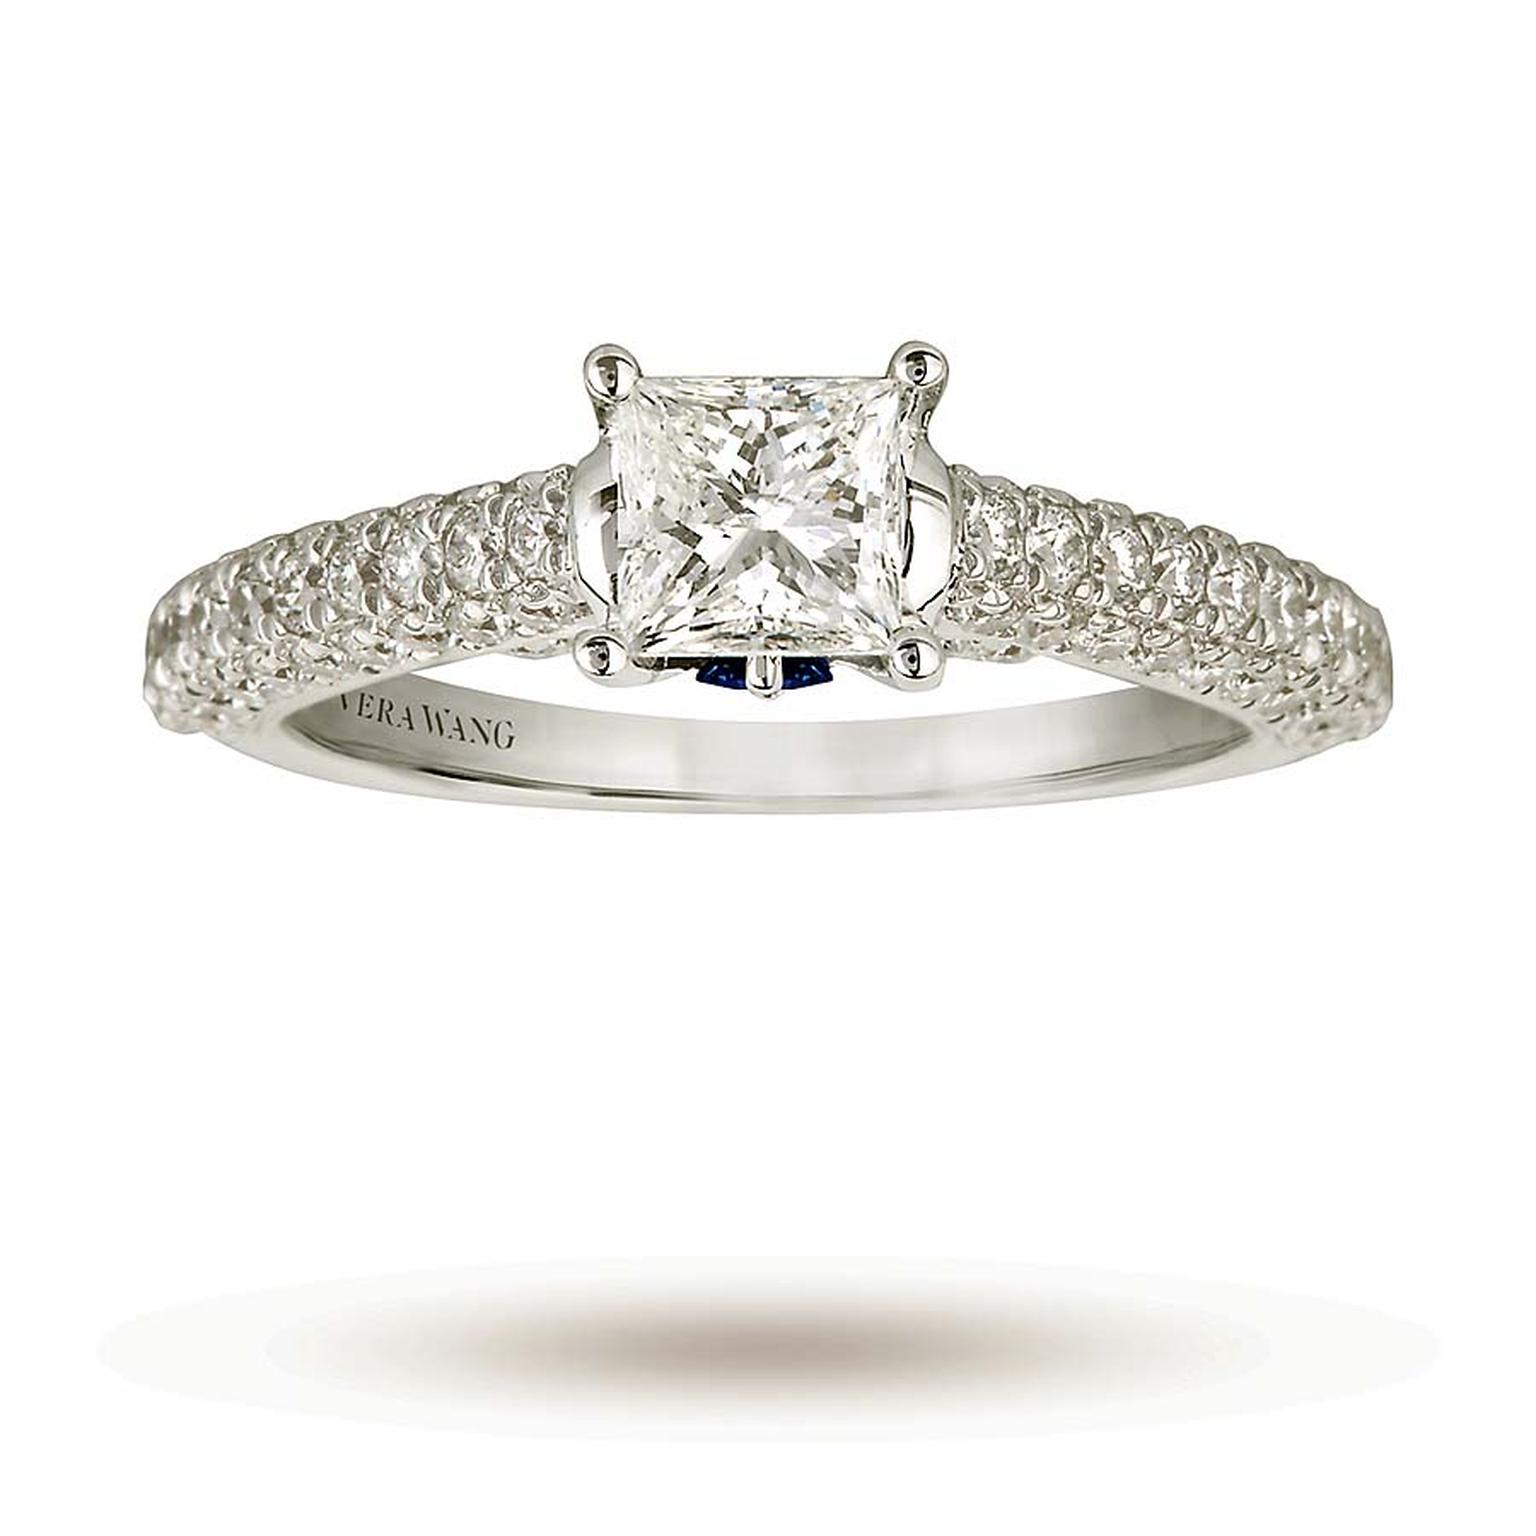 Vera Wang princess-cut diamond engagement ring with a pavé band (£6,000).